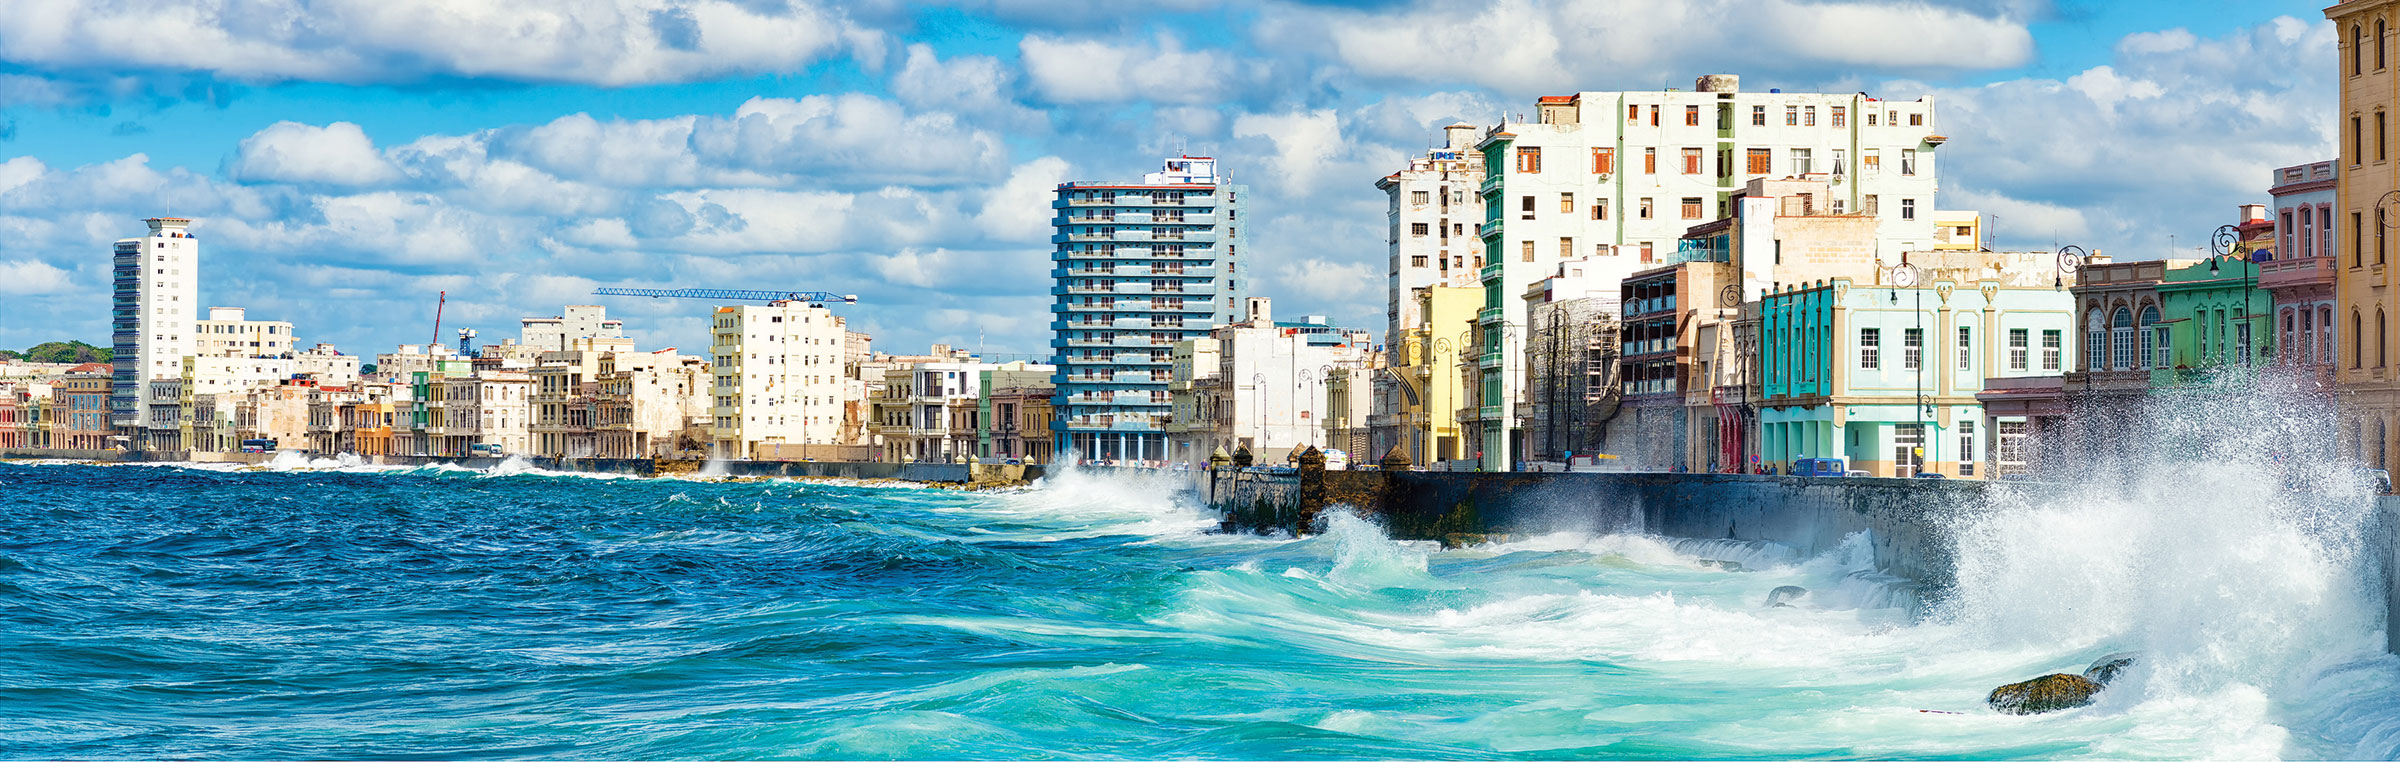 View of the waves and the coastline of the Havana from the malecon